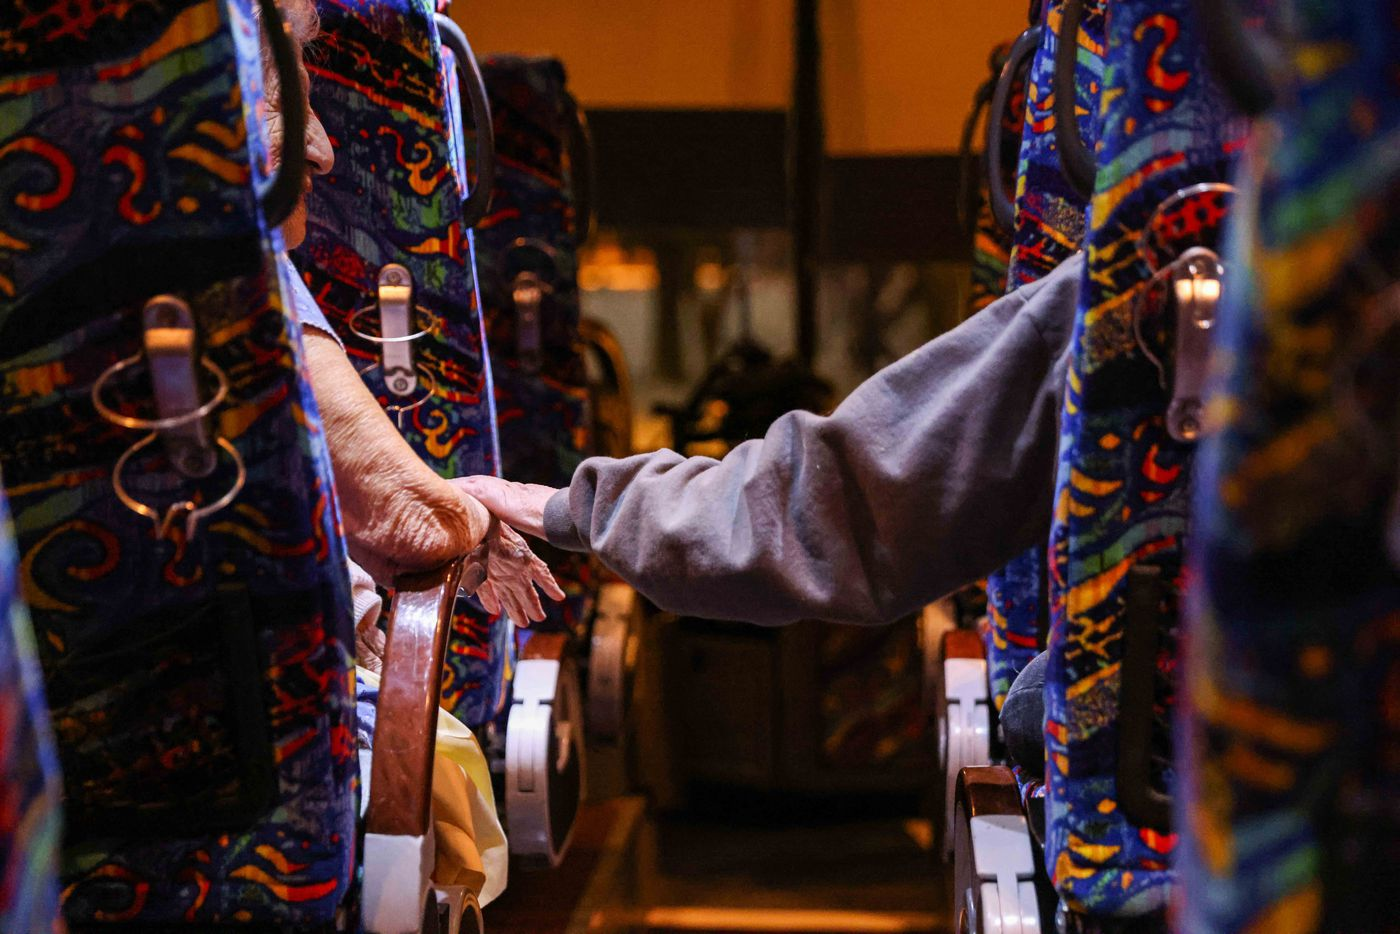 Gloria Sanders, 76, reaches for her mother's arm, Maria Barajas, 100, to try and calm her down as they prepare to spend the night on the bus that serves as a warming center at Pleasant Oaks Recreation Center on Wednesday, February 18, 2021 in Dallas. Their home has been without power since early Monday after the snowstorm hit Texas last Sunday.